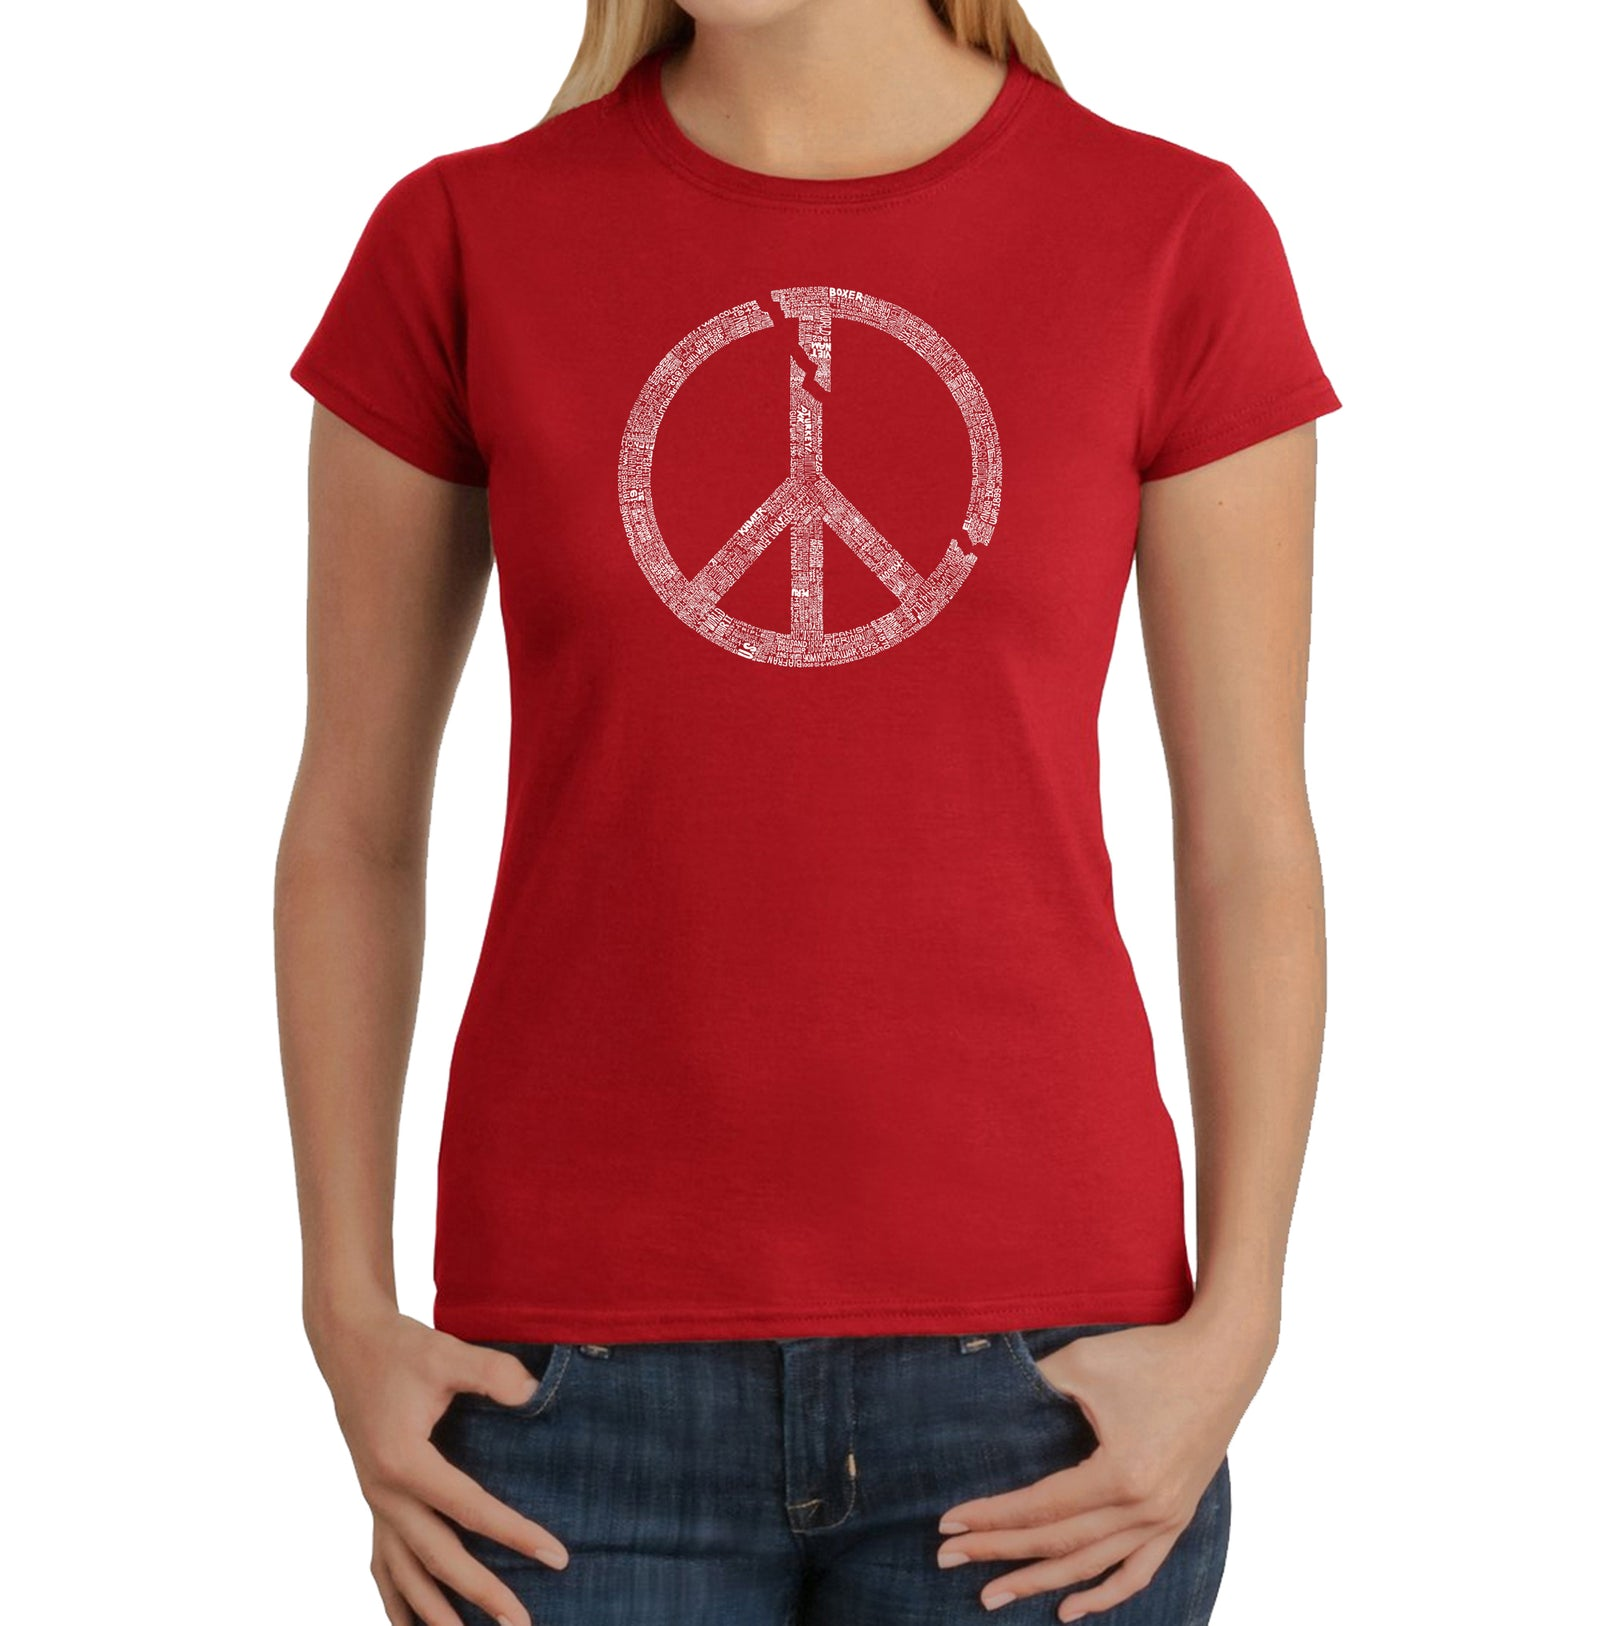 Women's T-Shirt - EVERY MAJOR WORLD CONFLICT SINCE 1770